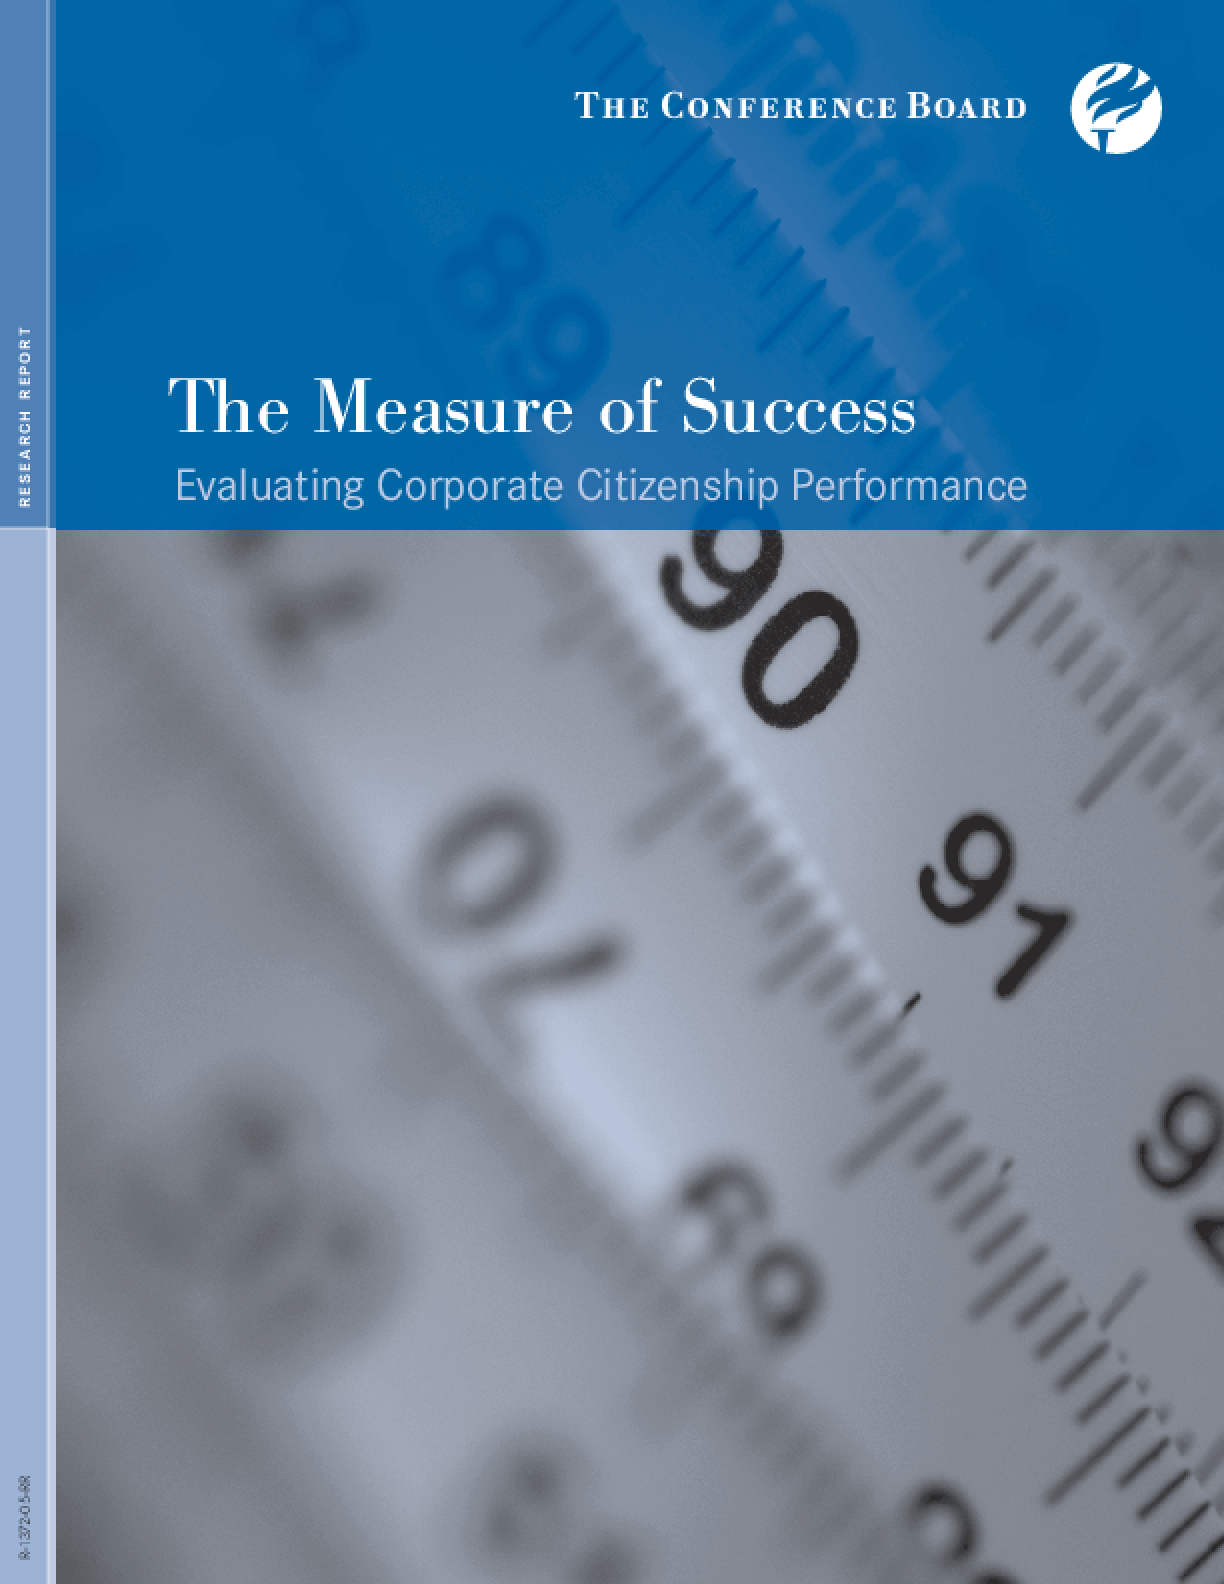 The Measure of Success: Evaluating Corporate Citizenship Performance